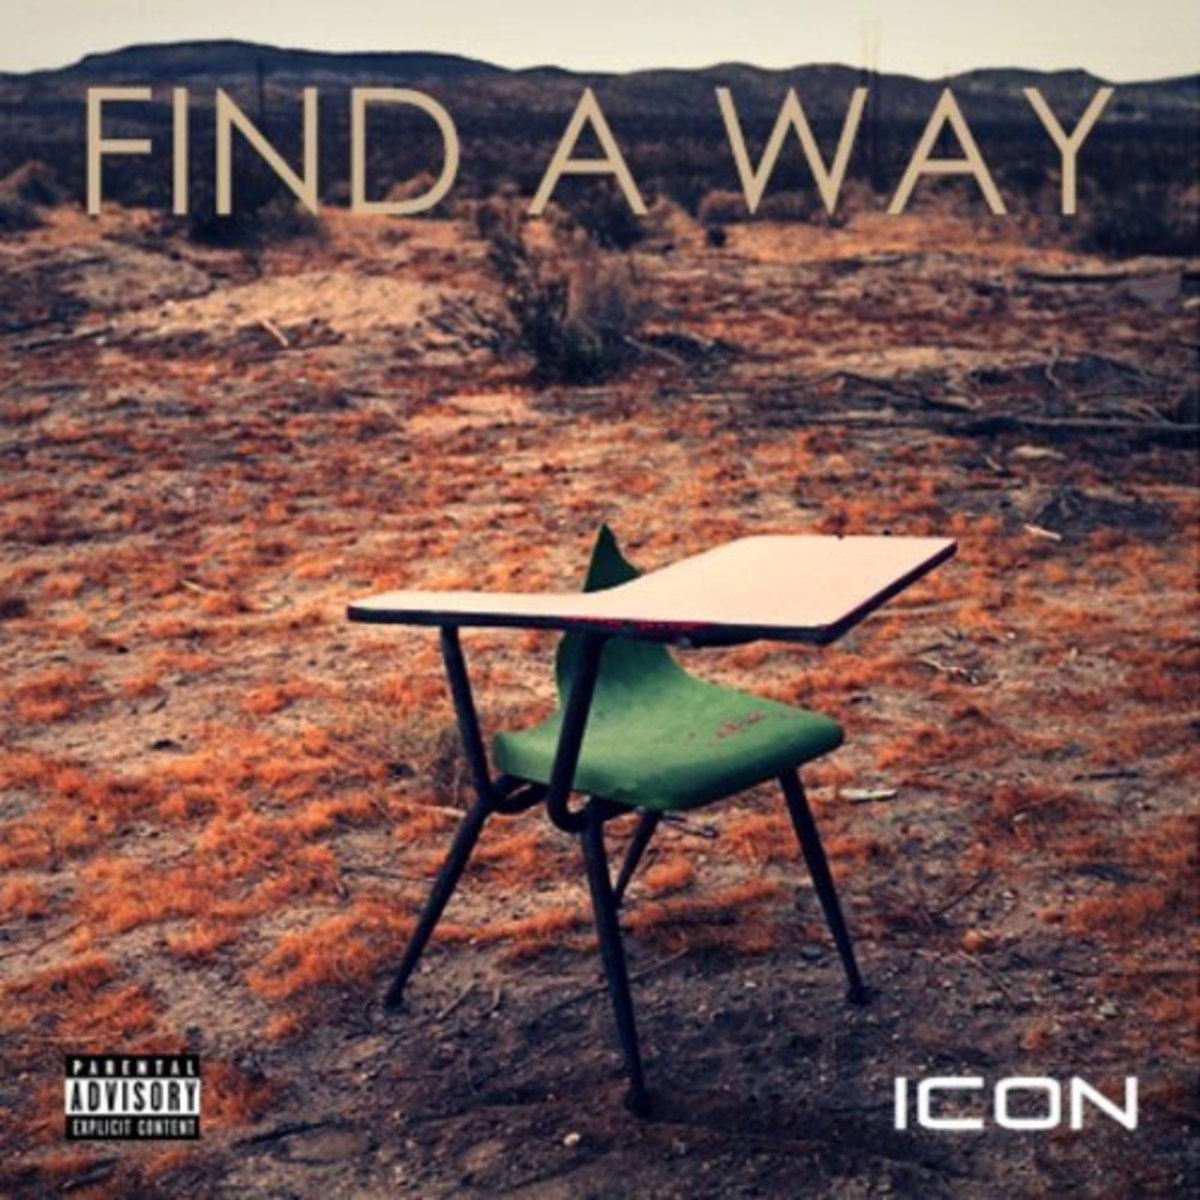 icon-findaway.jpg